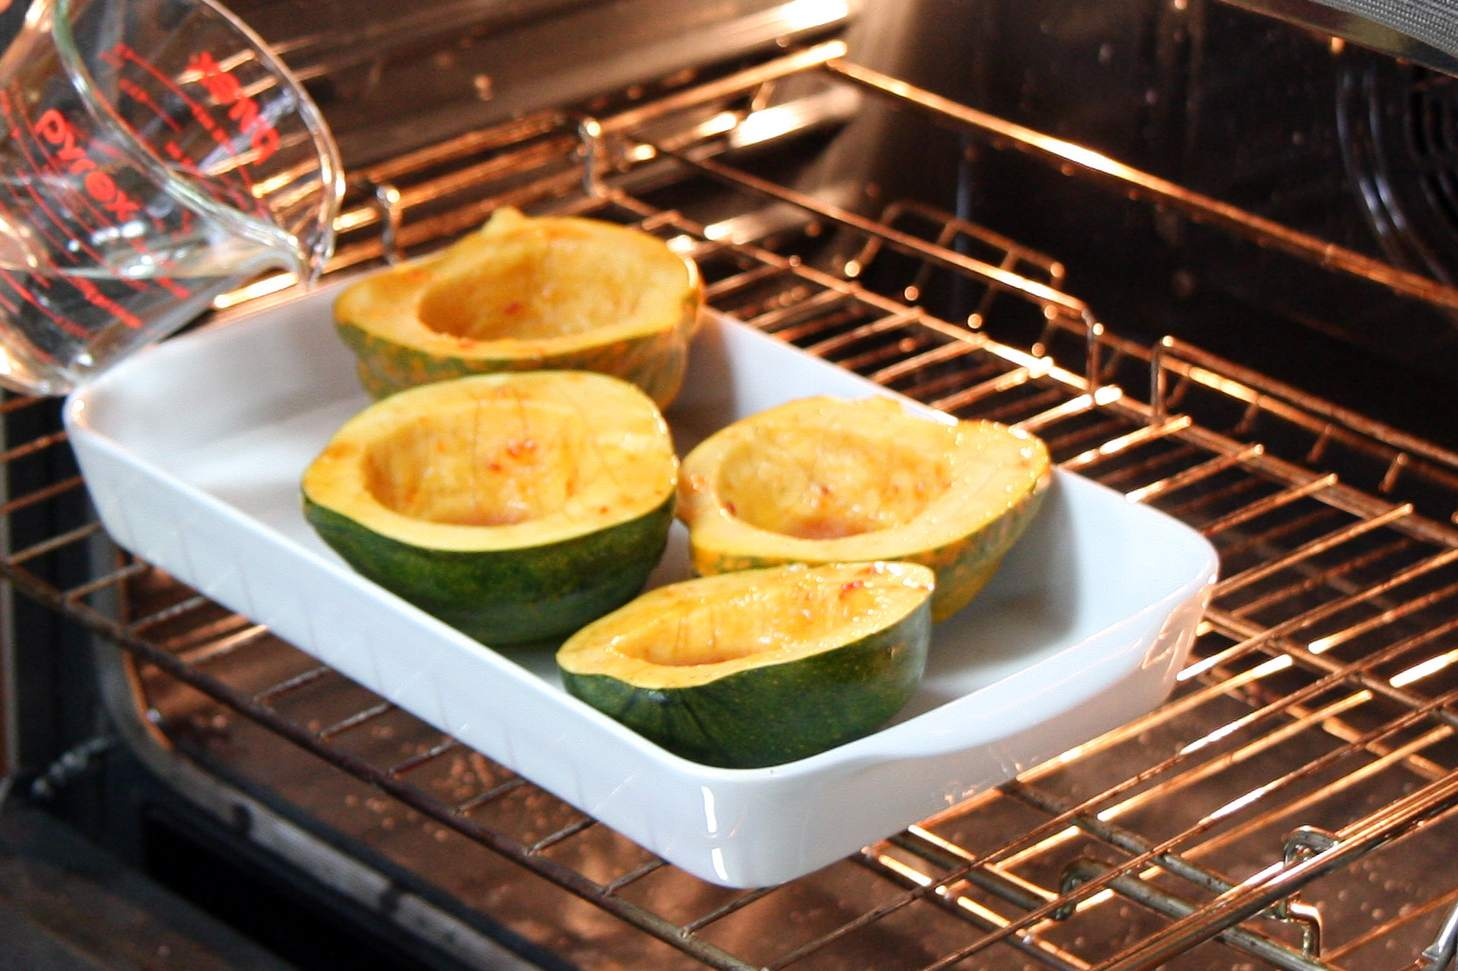 Adding water to the baking pan with the acorn squash